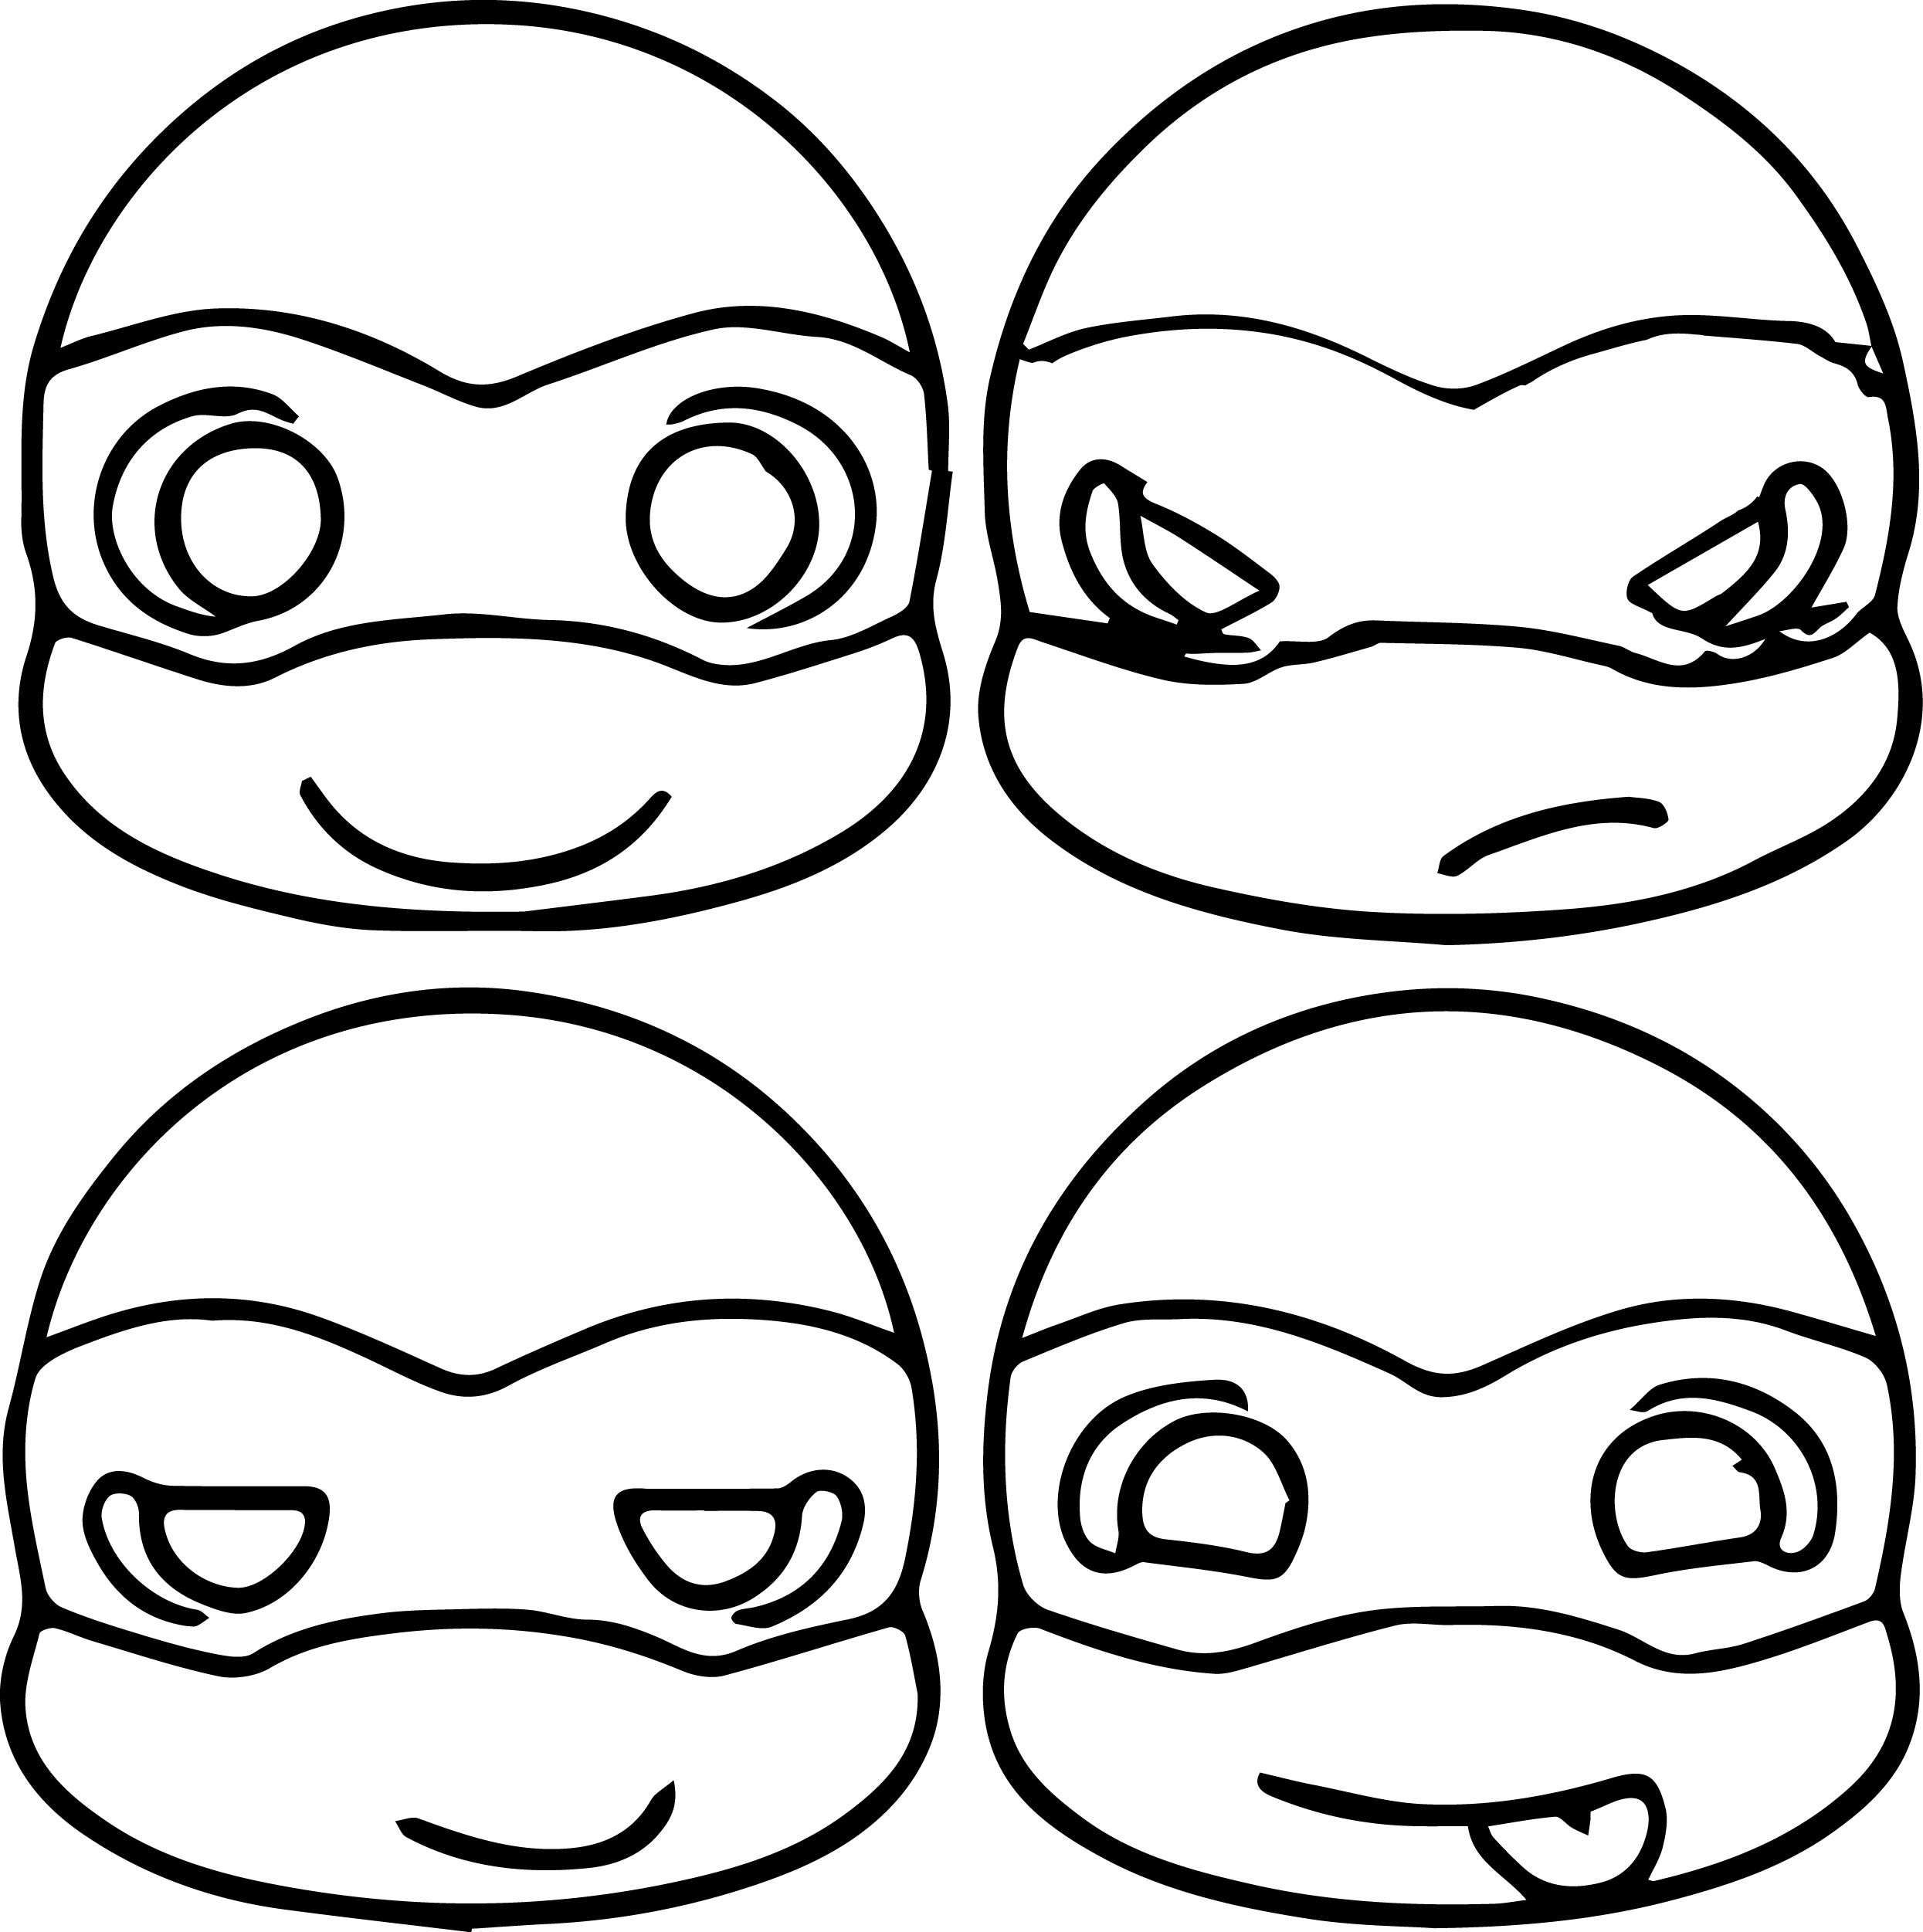 easy ninja coloring pages night ninja from pjmasks coloring page free printable easy ninja coloring pages